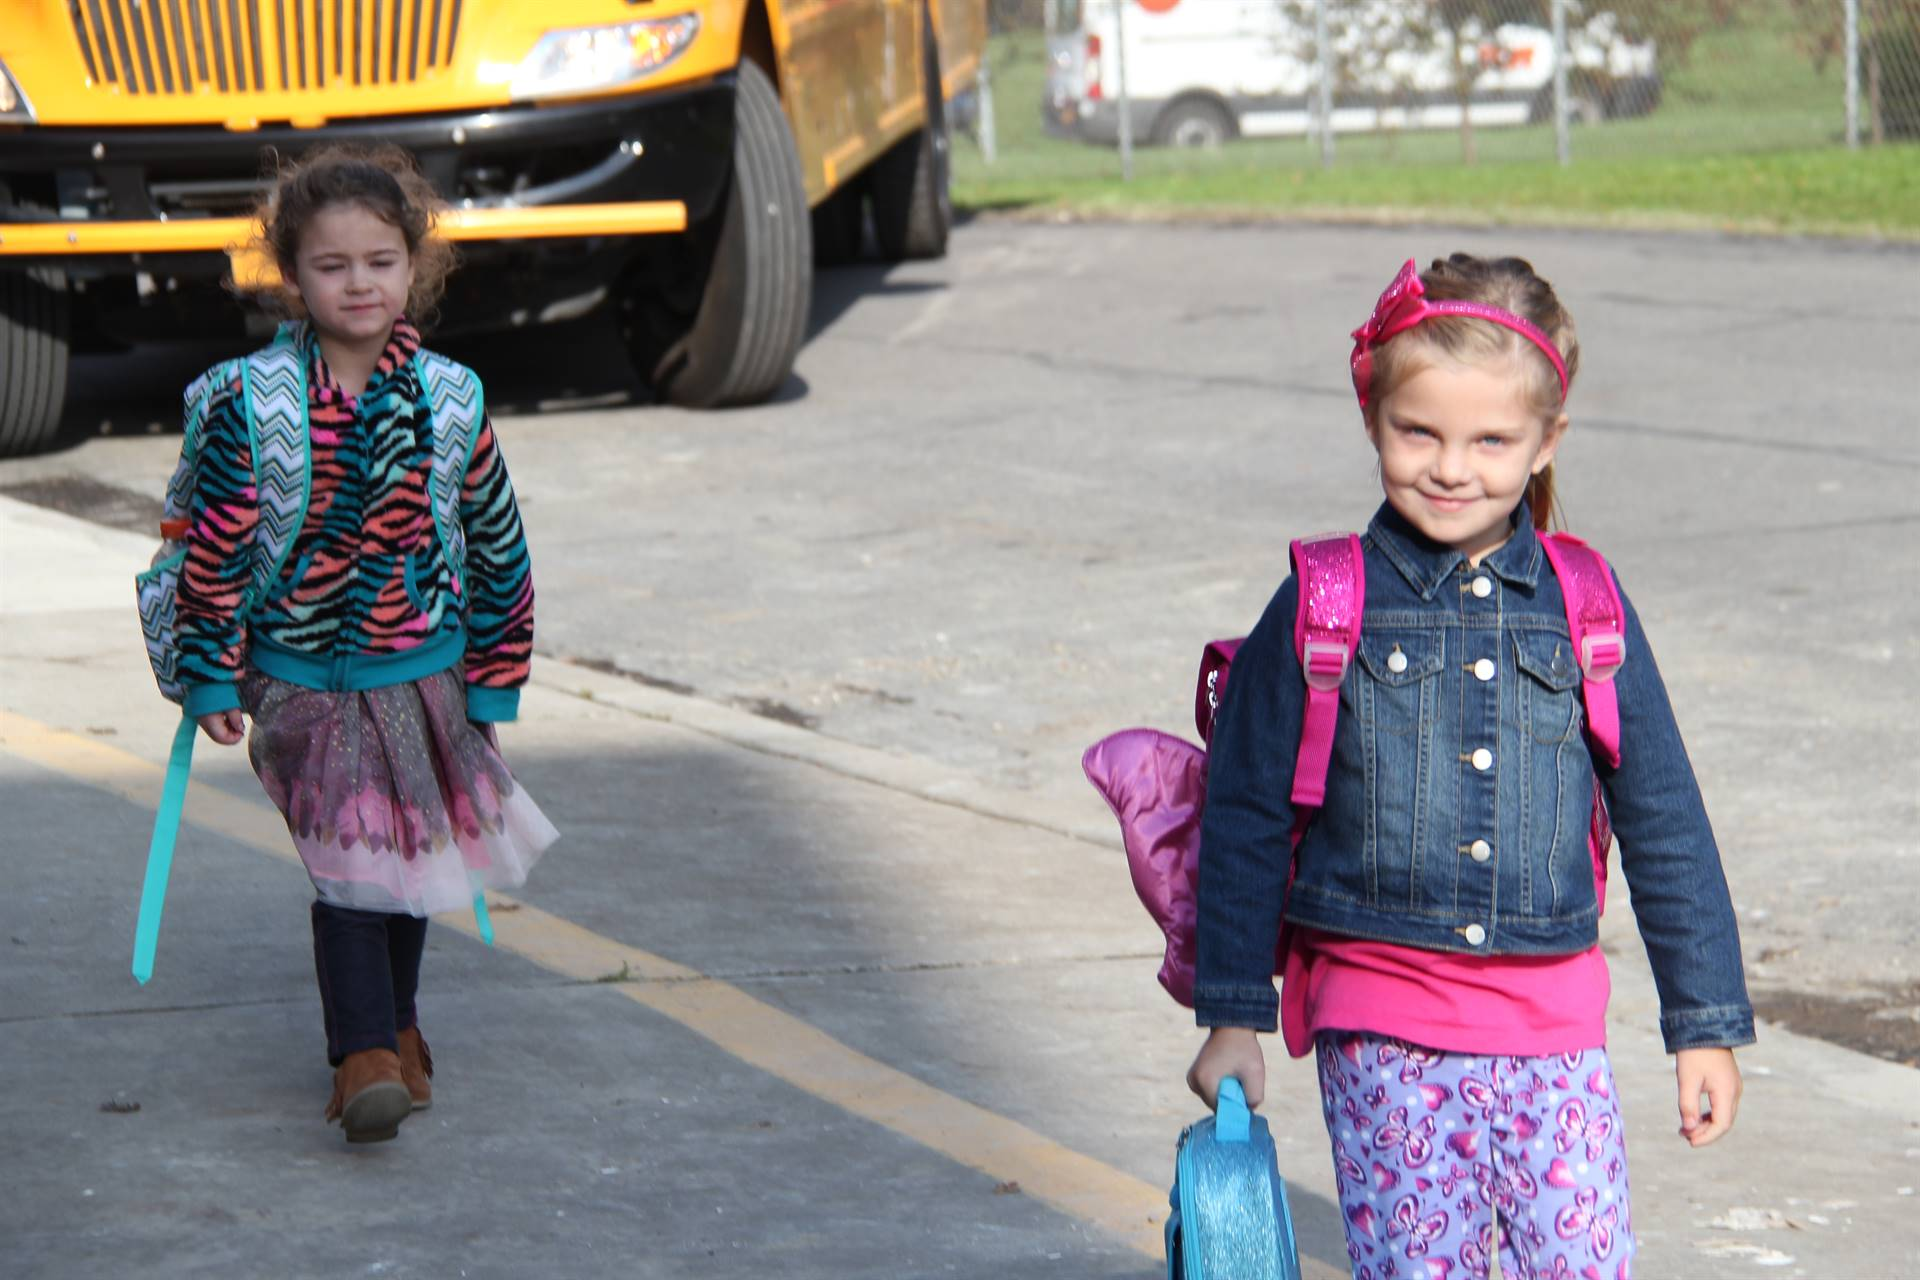 girls smile while walking towards port dickinson elementary school after getting off bus